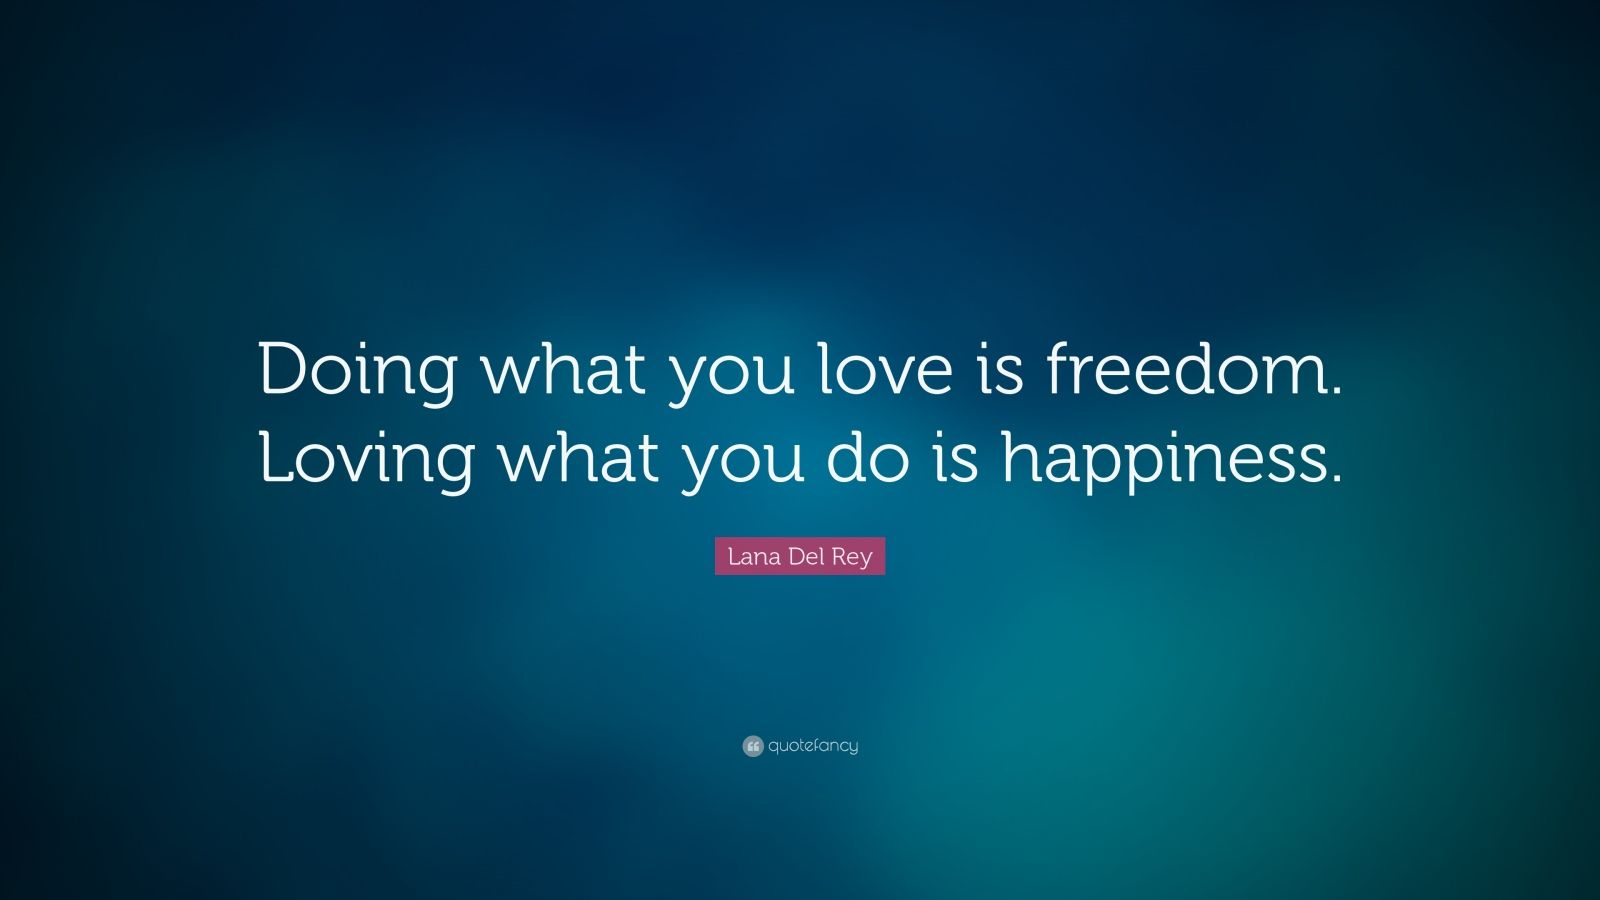 Do What U Love Quotes : Del Rey Quote: ?Doing what you love is freedom. Loving what you do ...